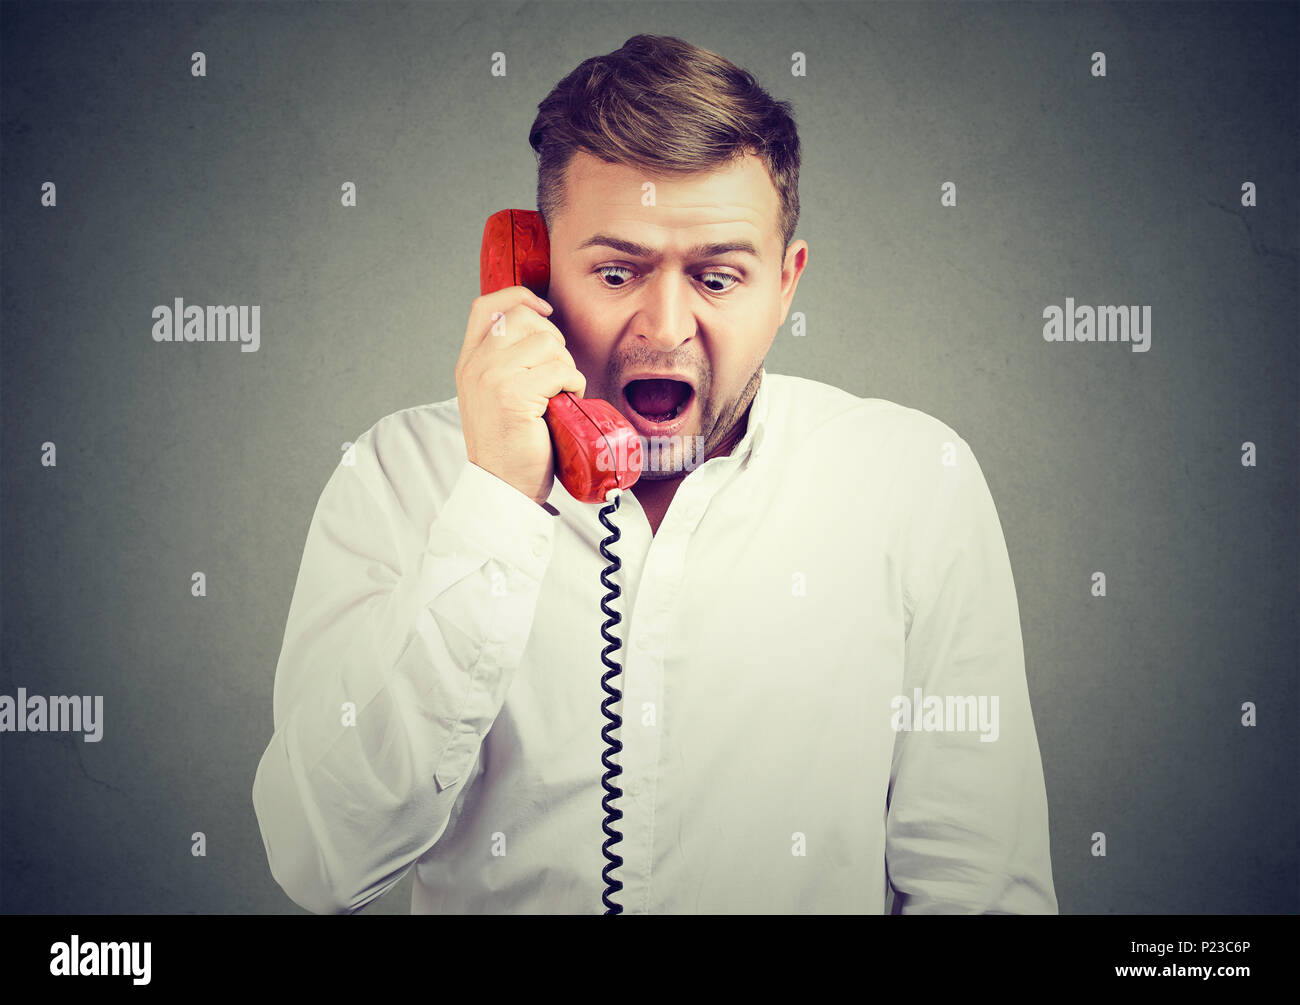 Expressive screaming man speaking on a phone being stunned with bad news and reacting. - Stock Image